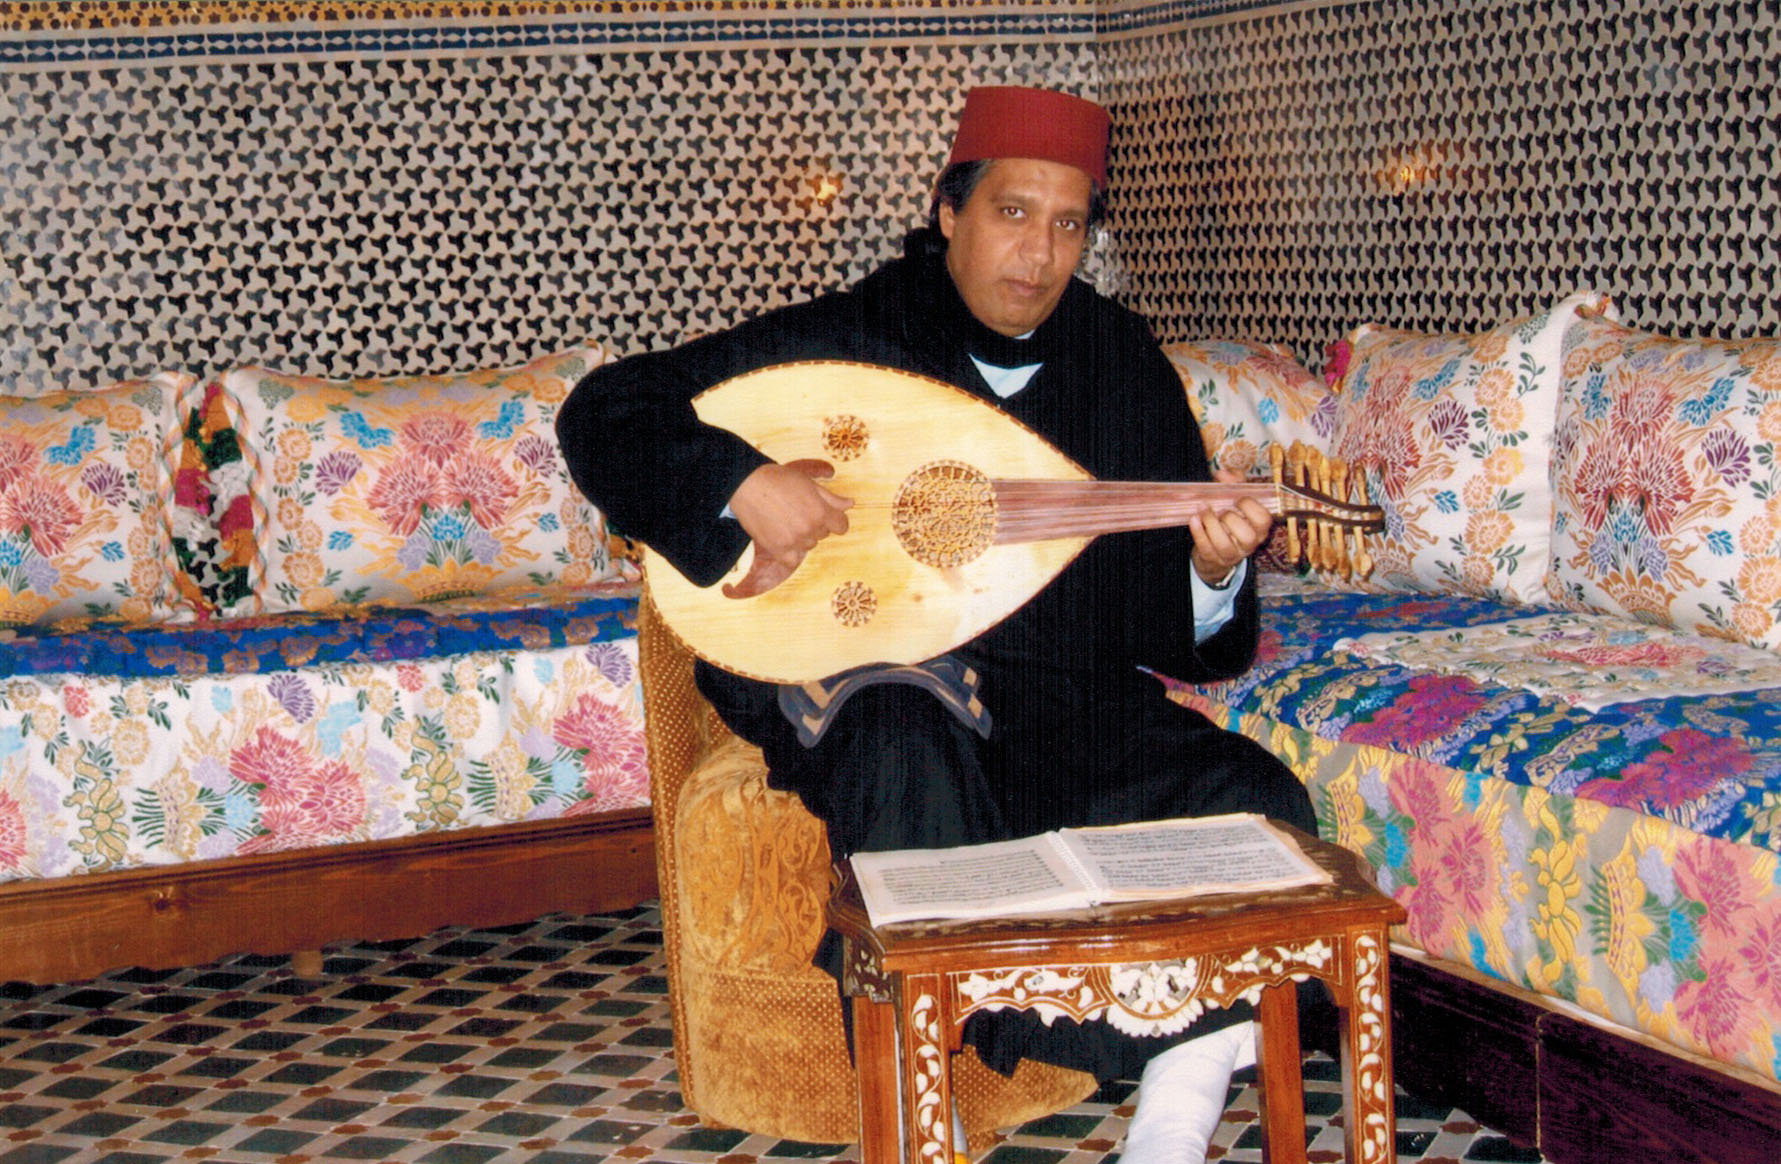 Lute player at the Riad Al Yakout in Fez, Morocco